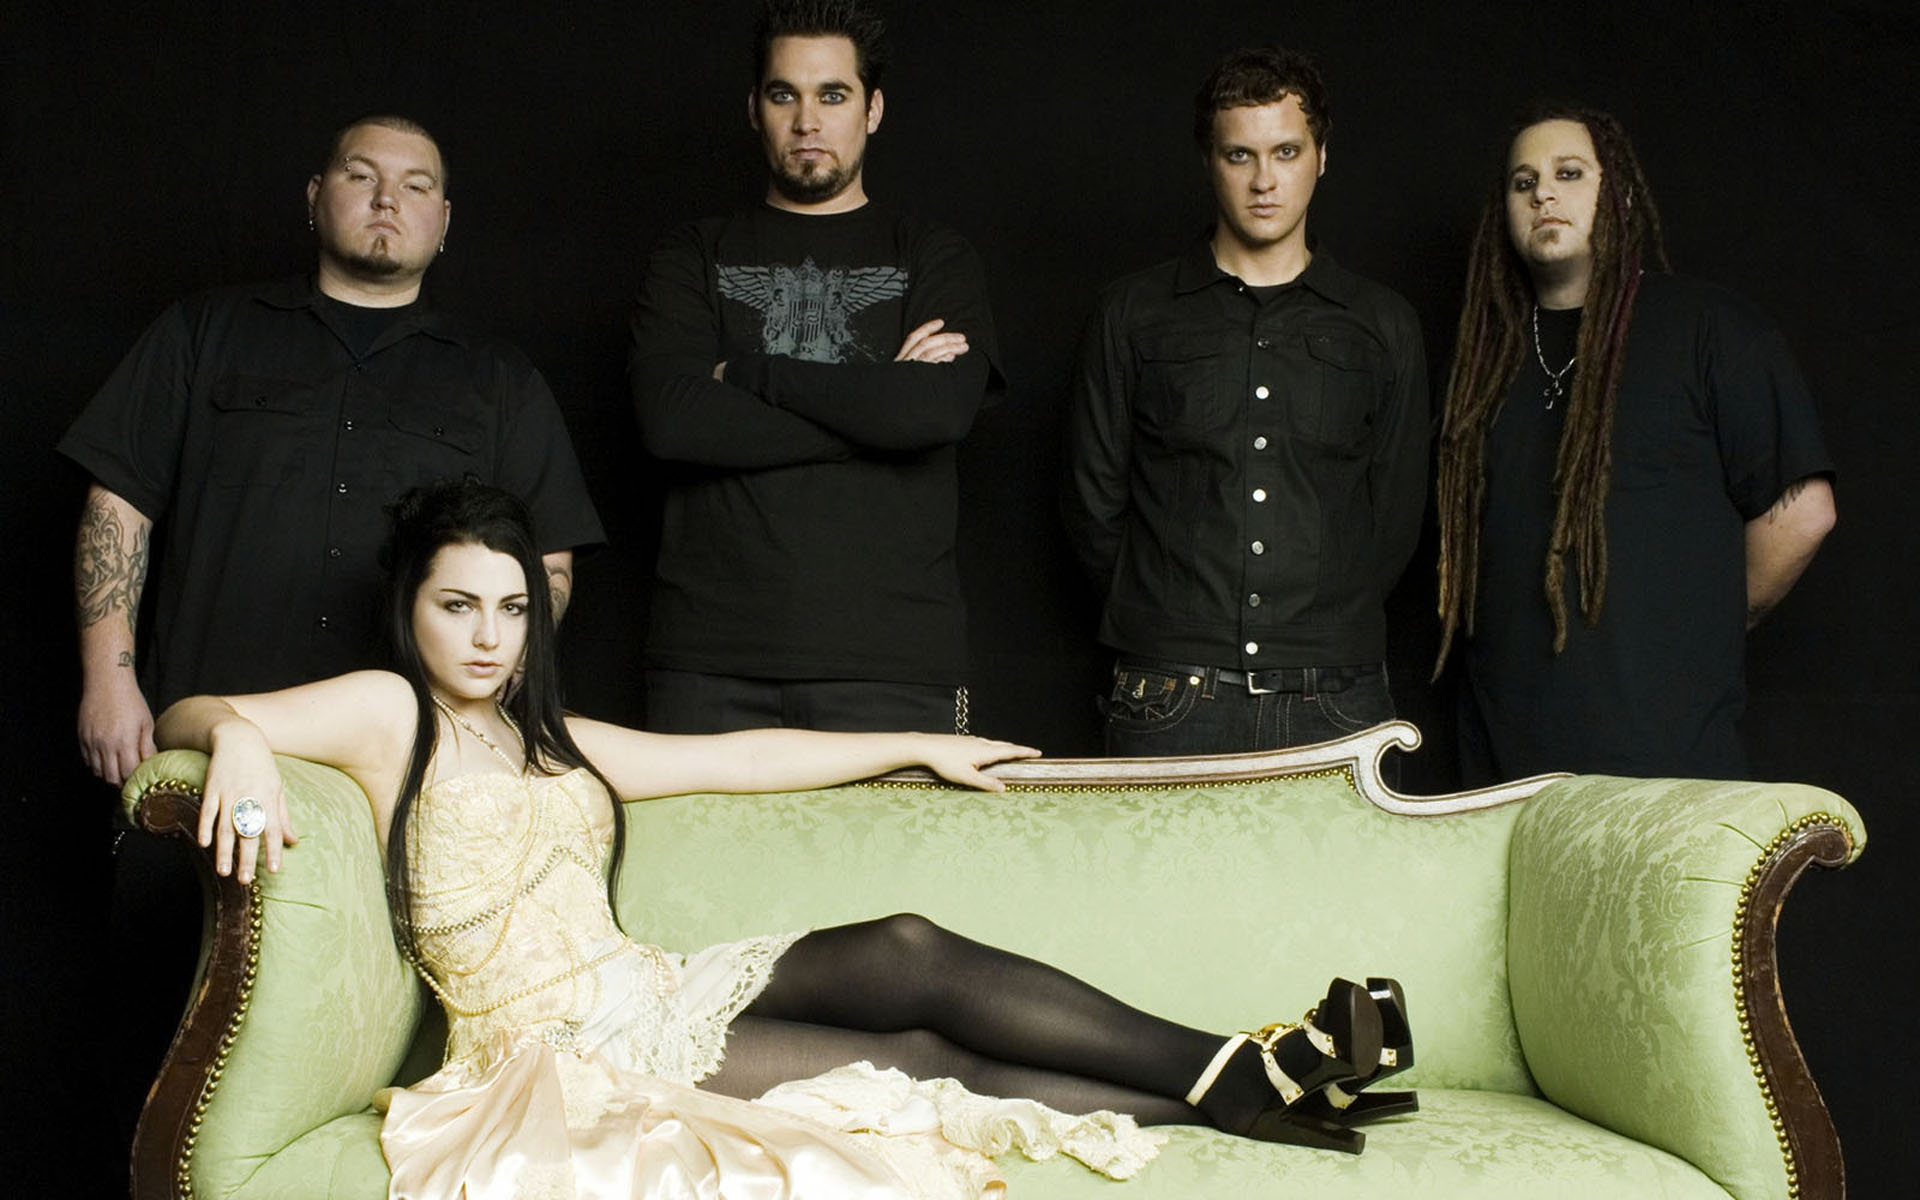 Evanescence HD 1920x1200 Wallpapers 1920x1200 Wallpapers Pictures 1920x1200